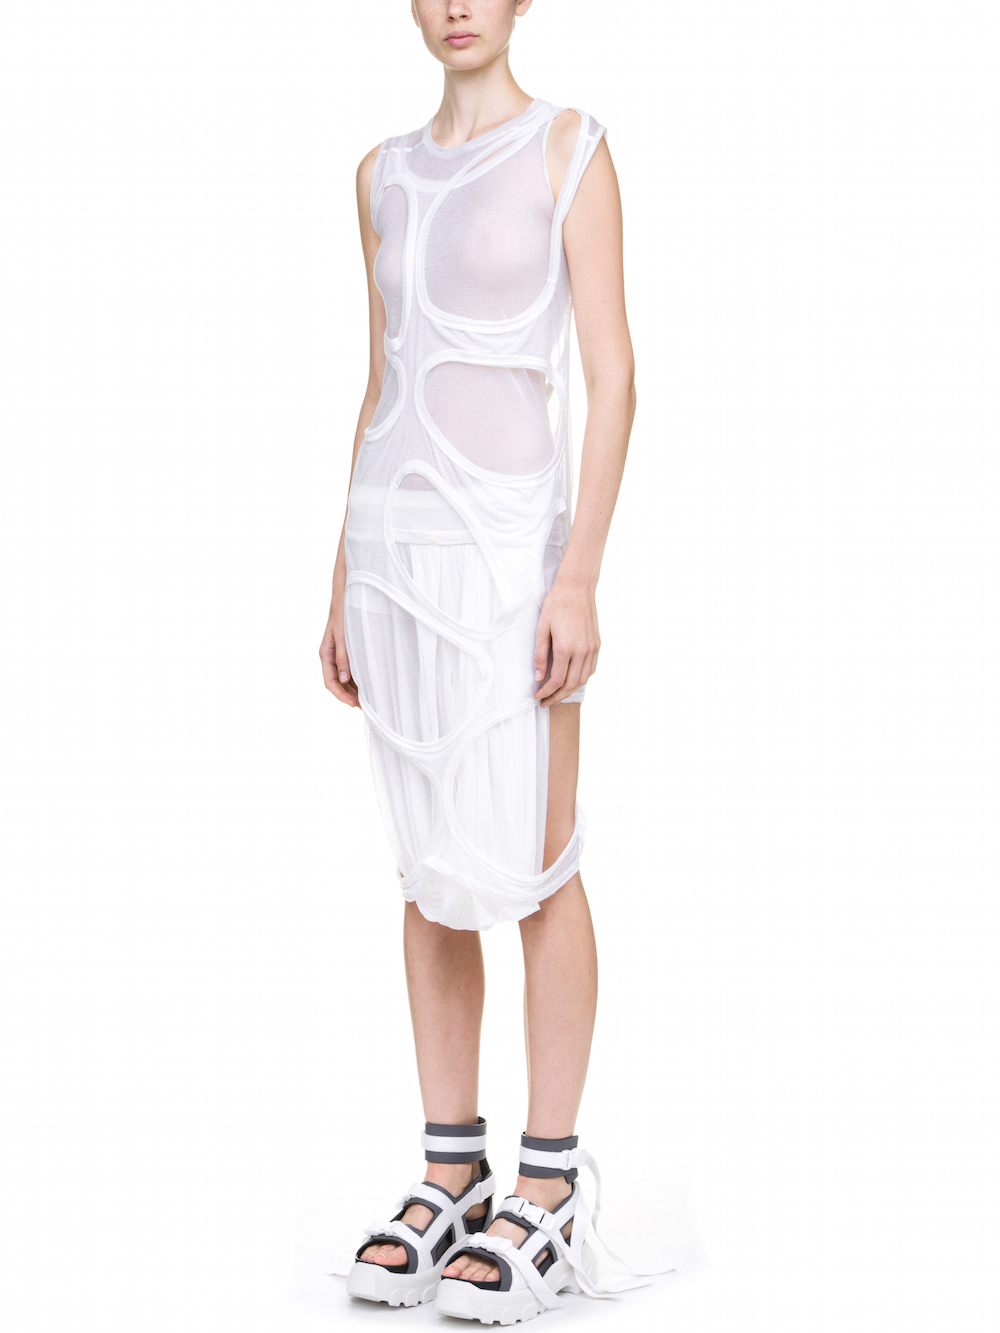 Buy Cheap Great Deals Outlet Factory Outlet Membrane dress - White Rick Owens O5kQhaQ